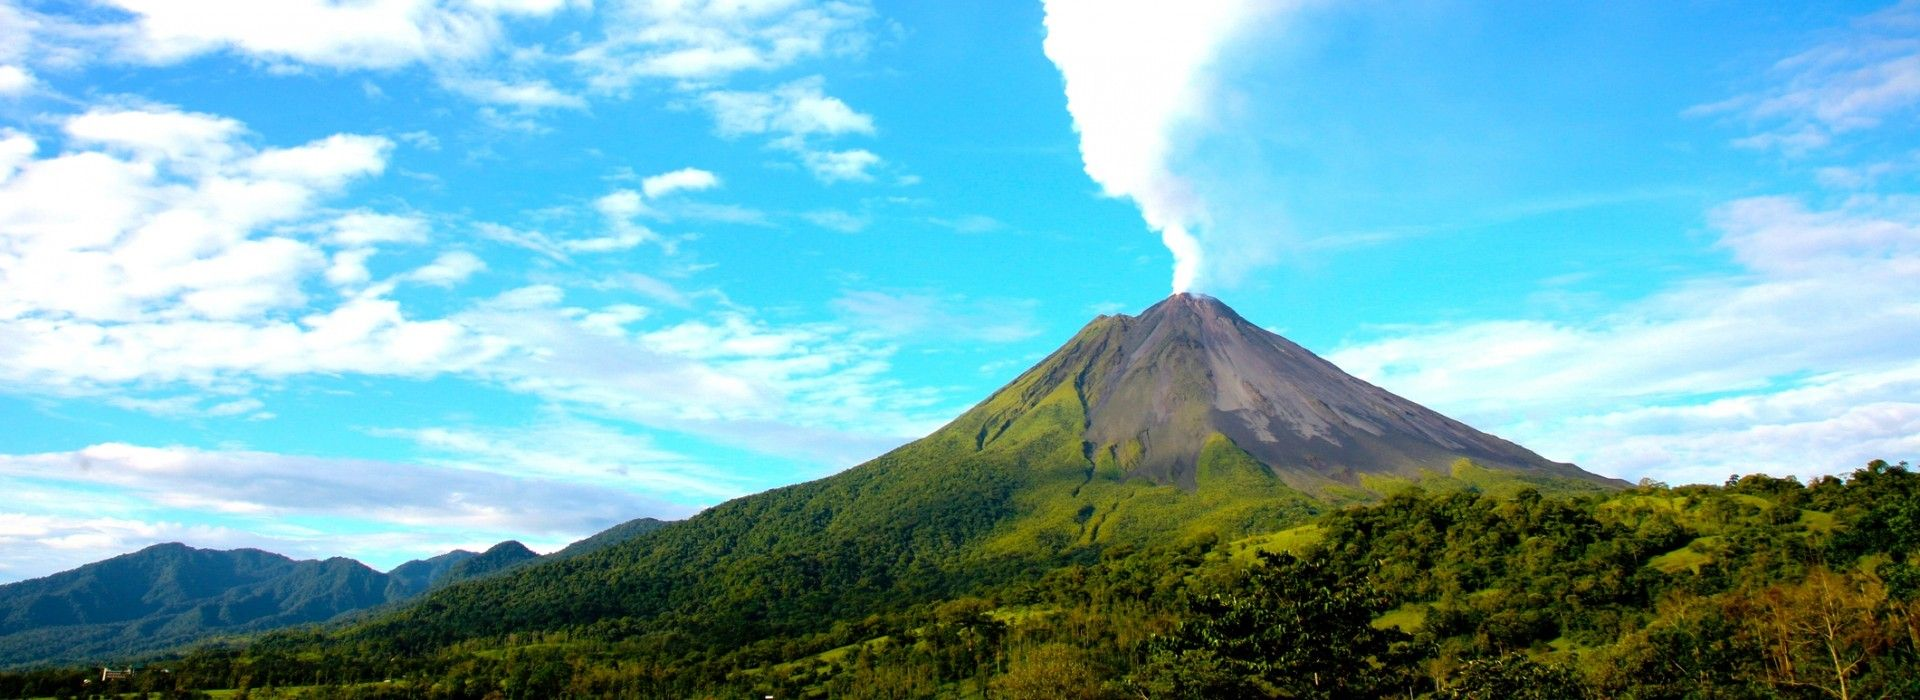 Cultural, religious and historic sites Tours in Costa Rica